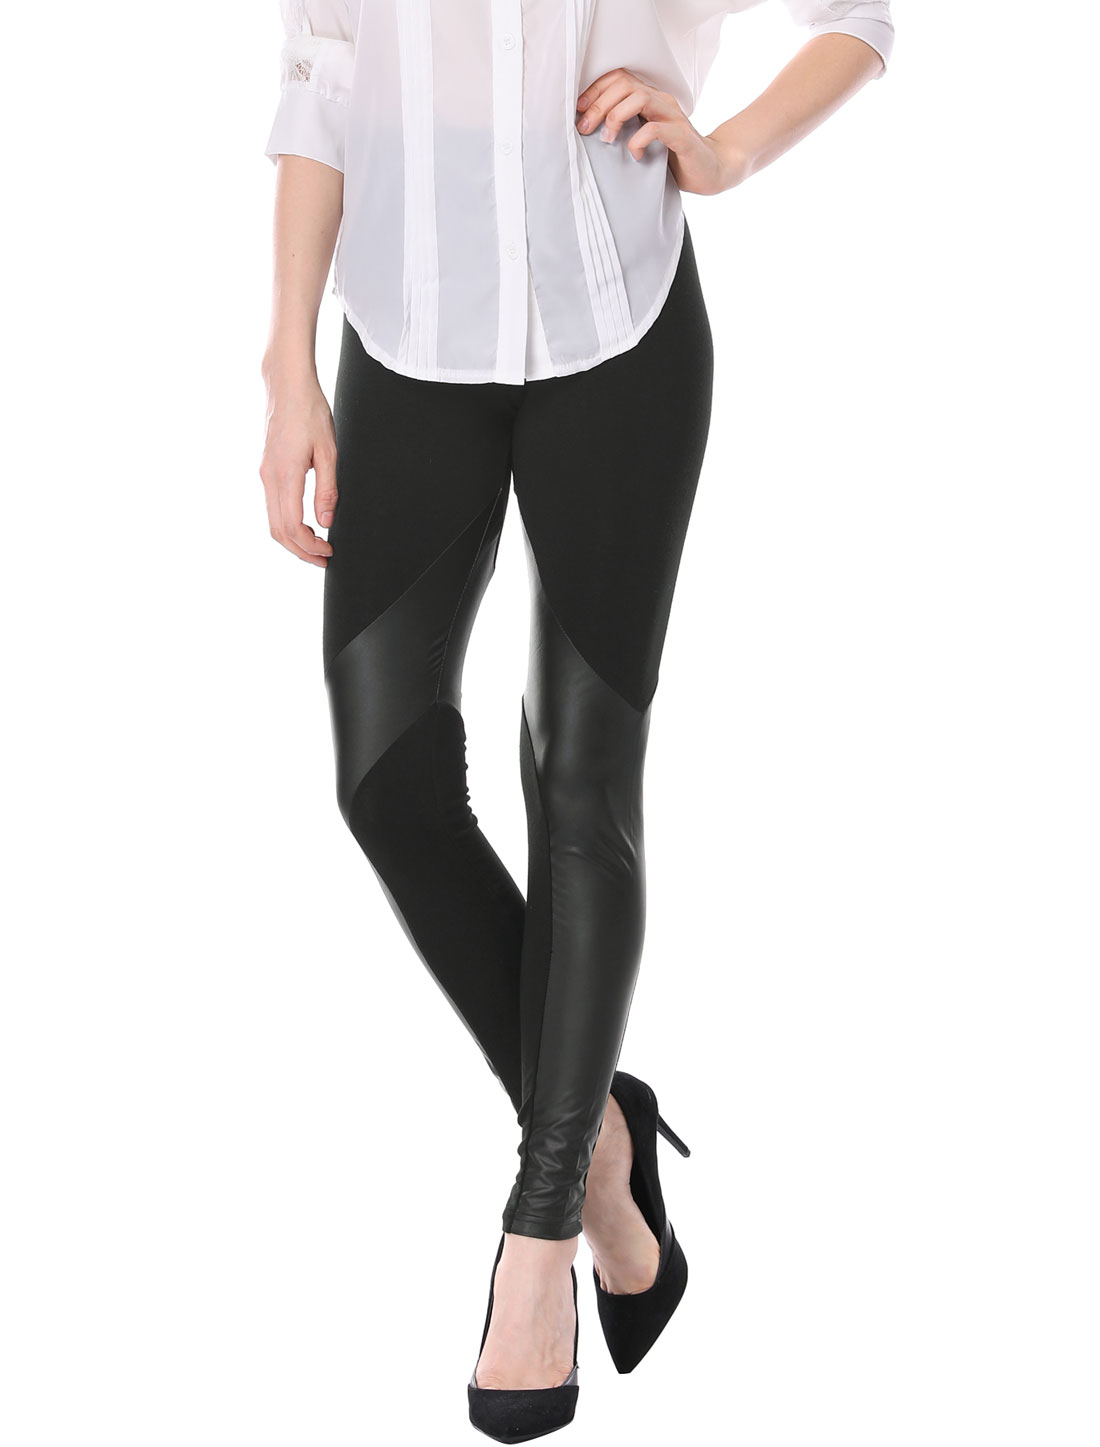 Allegra K Ladies Elastic Waist Faux Leather Splicing Skinny Leggings Black M